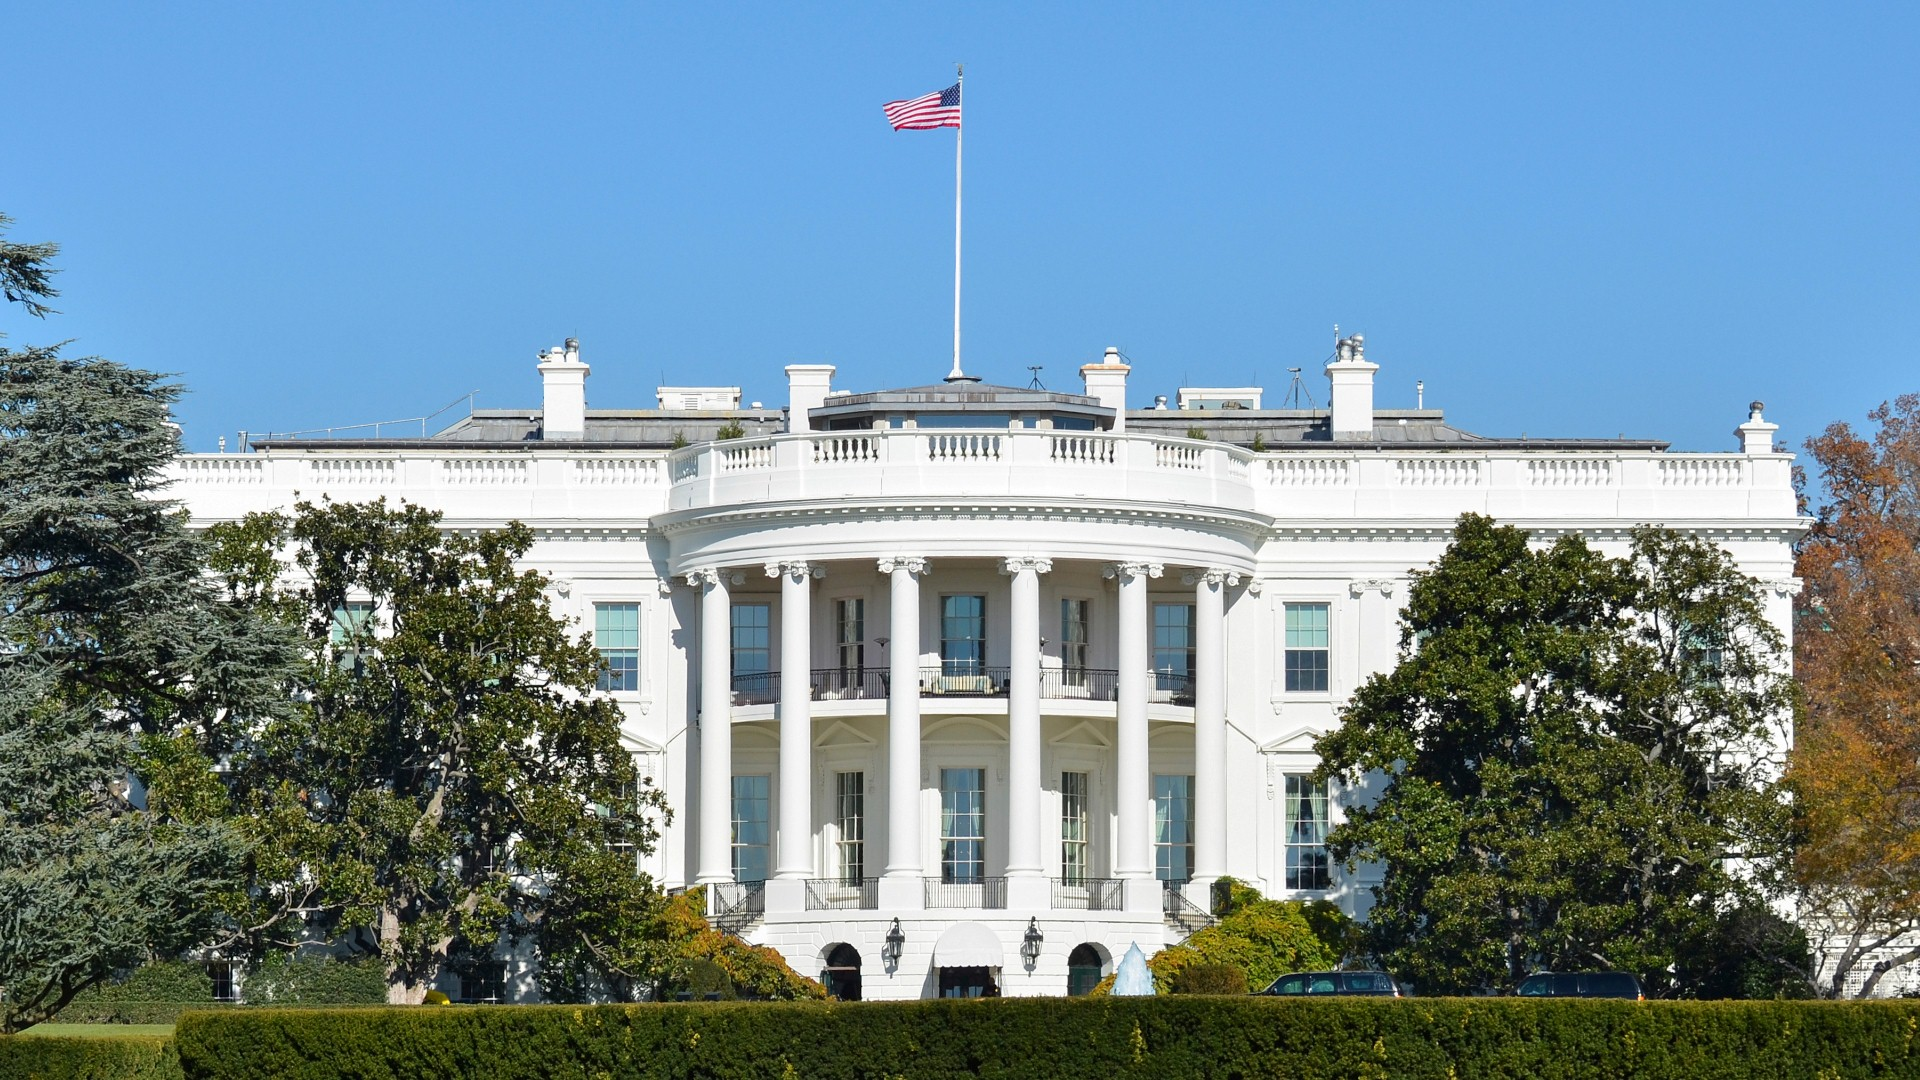 White house wallpaper wallpapersafari for House images hd